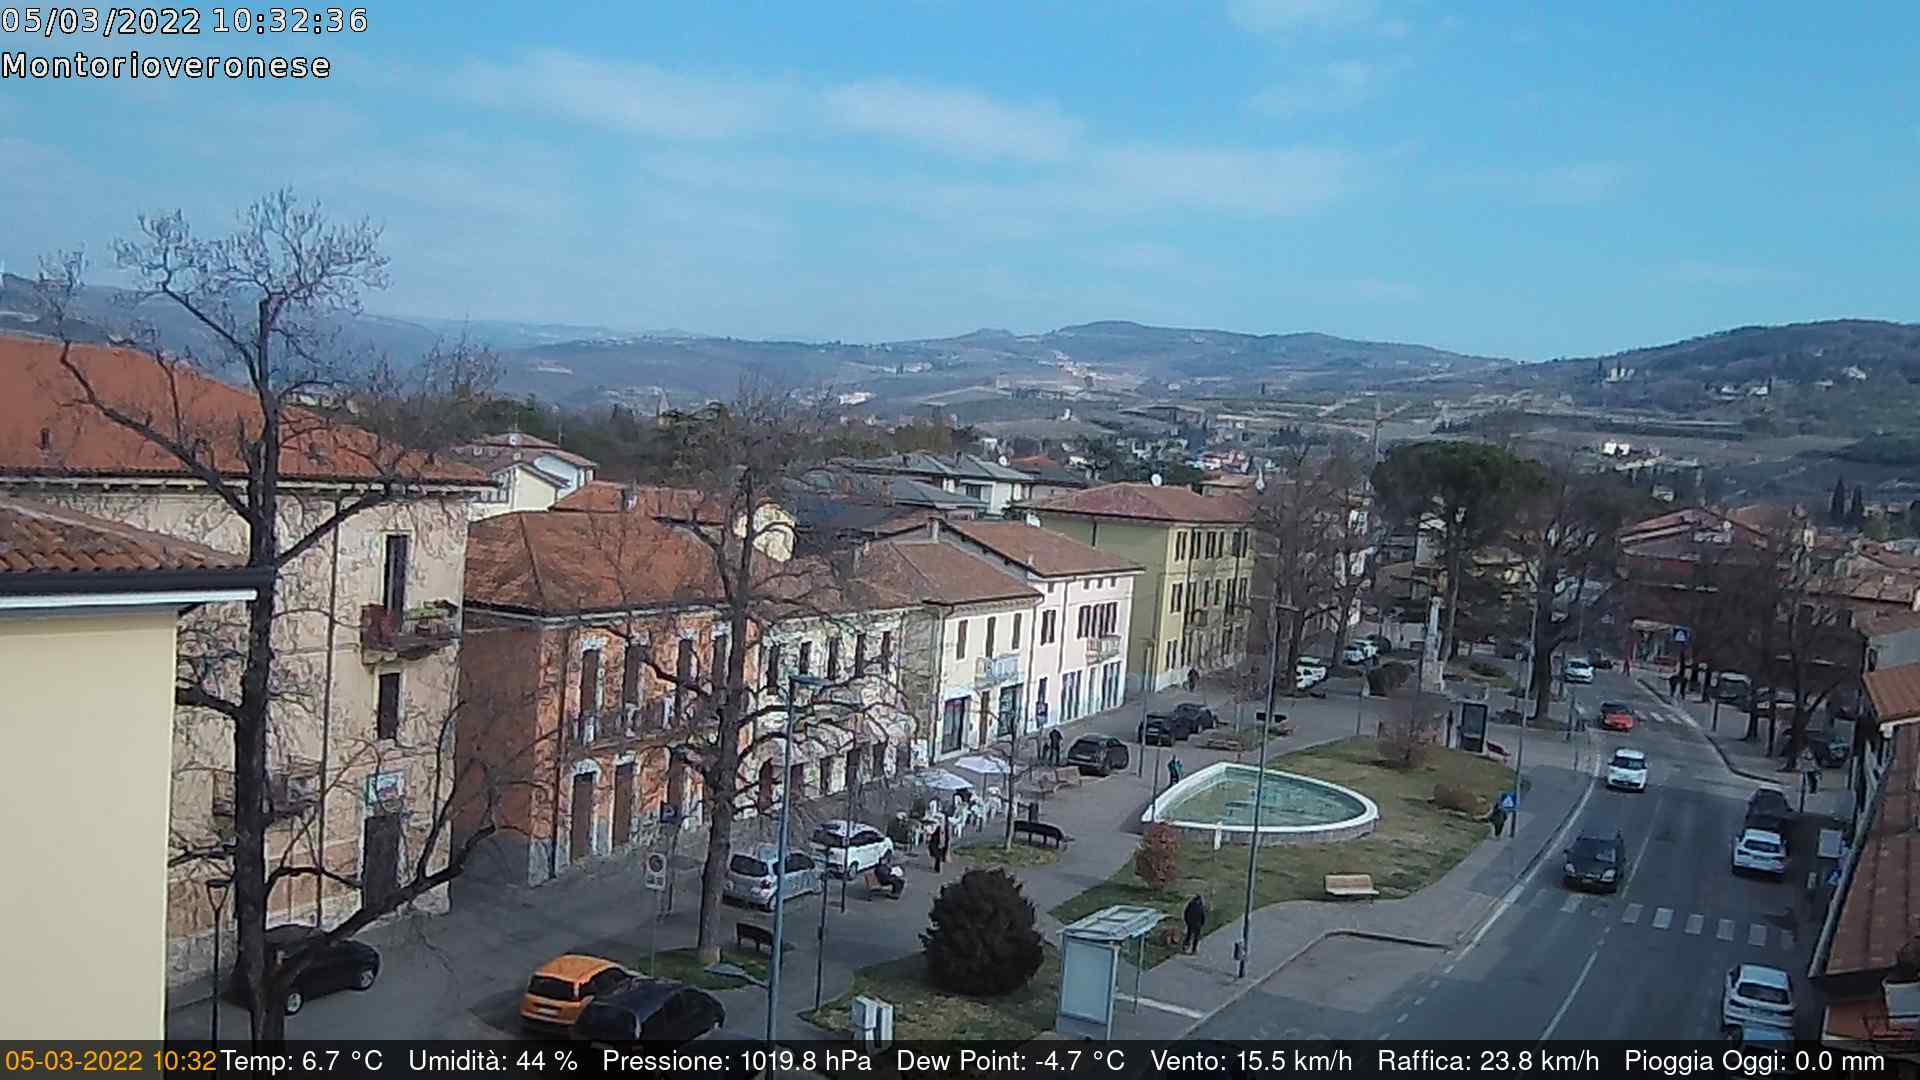 Immagine webcam in tempo reale meteo.montorioveronese.it